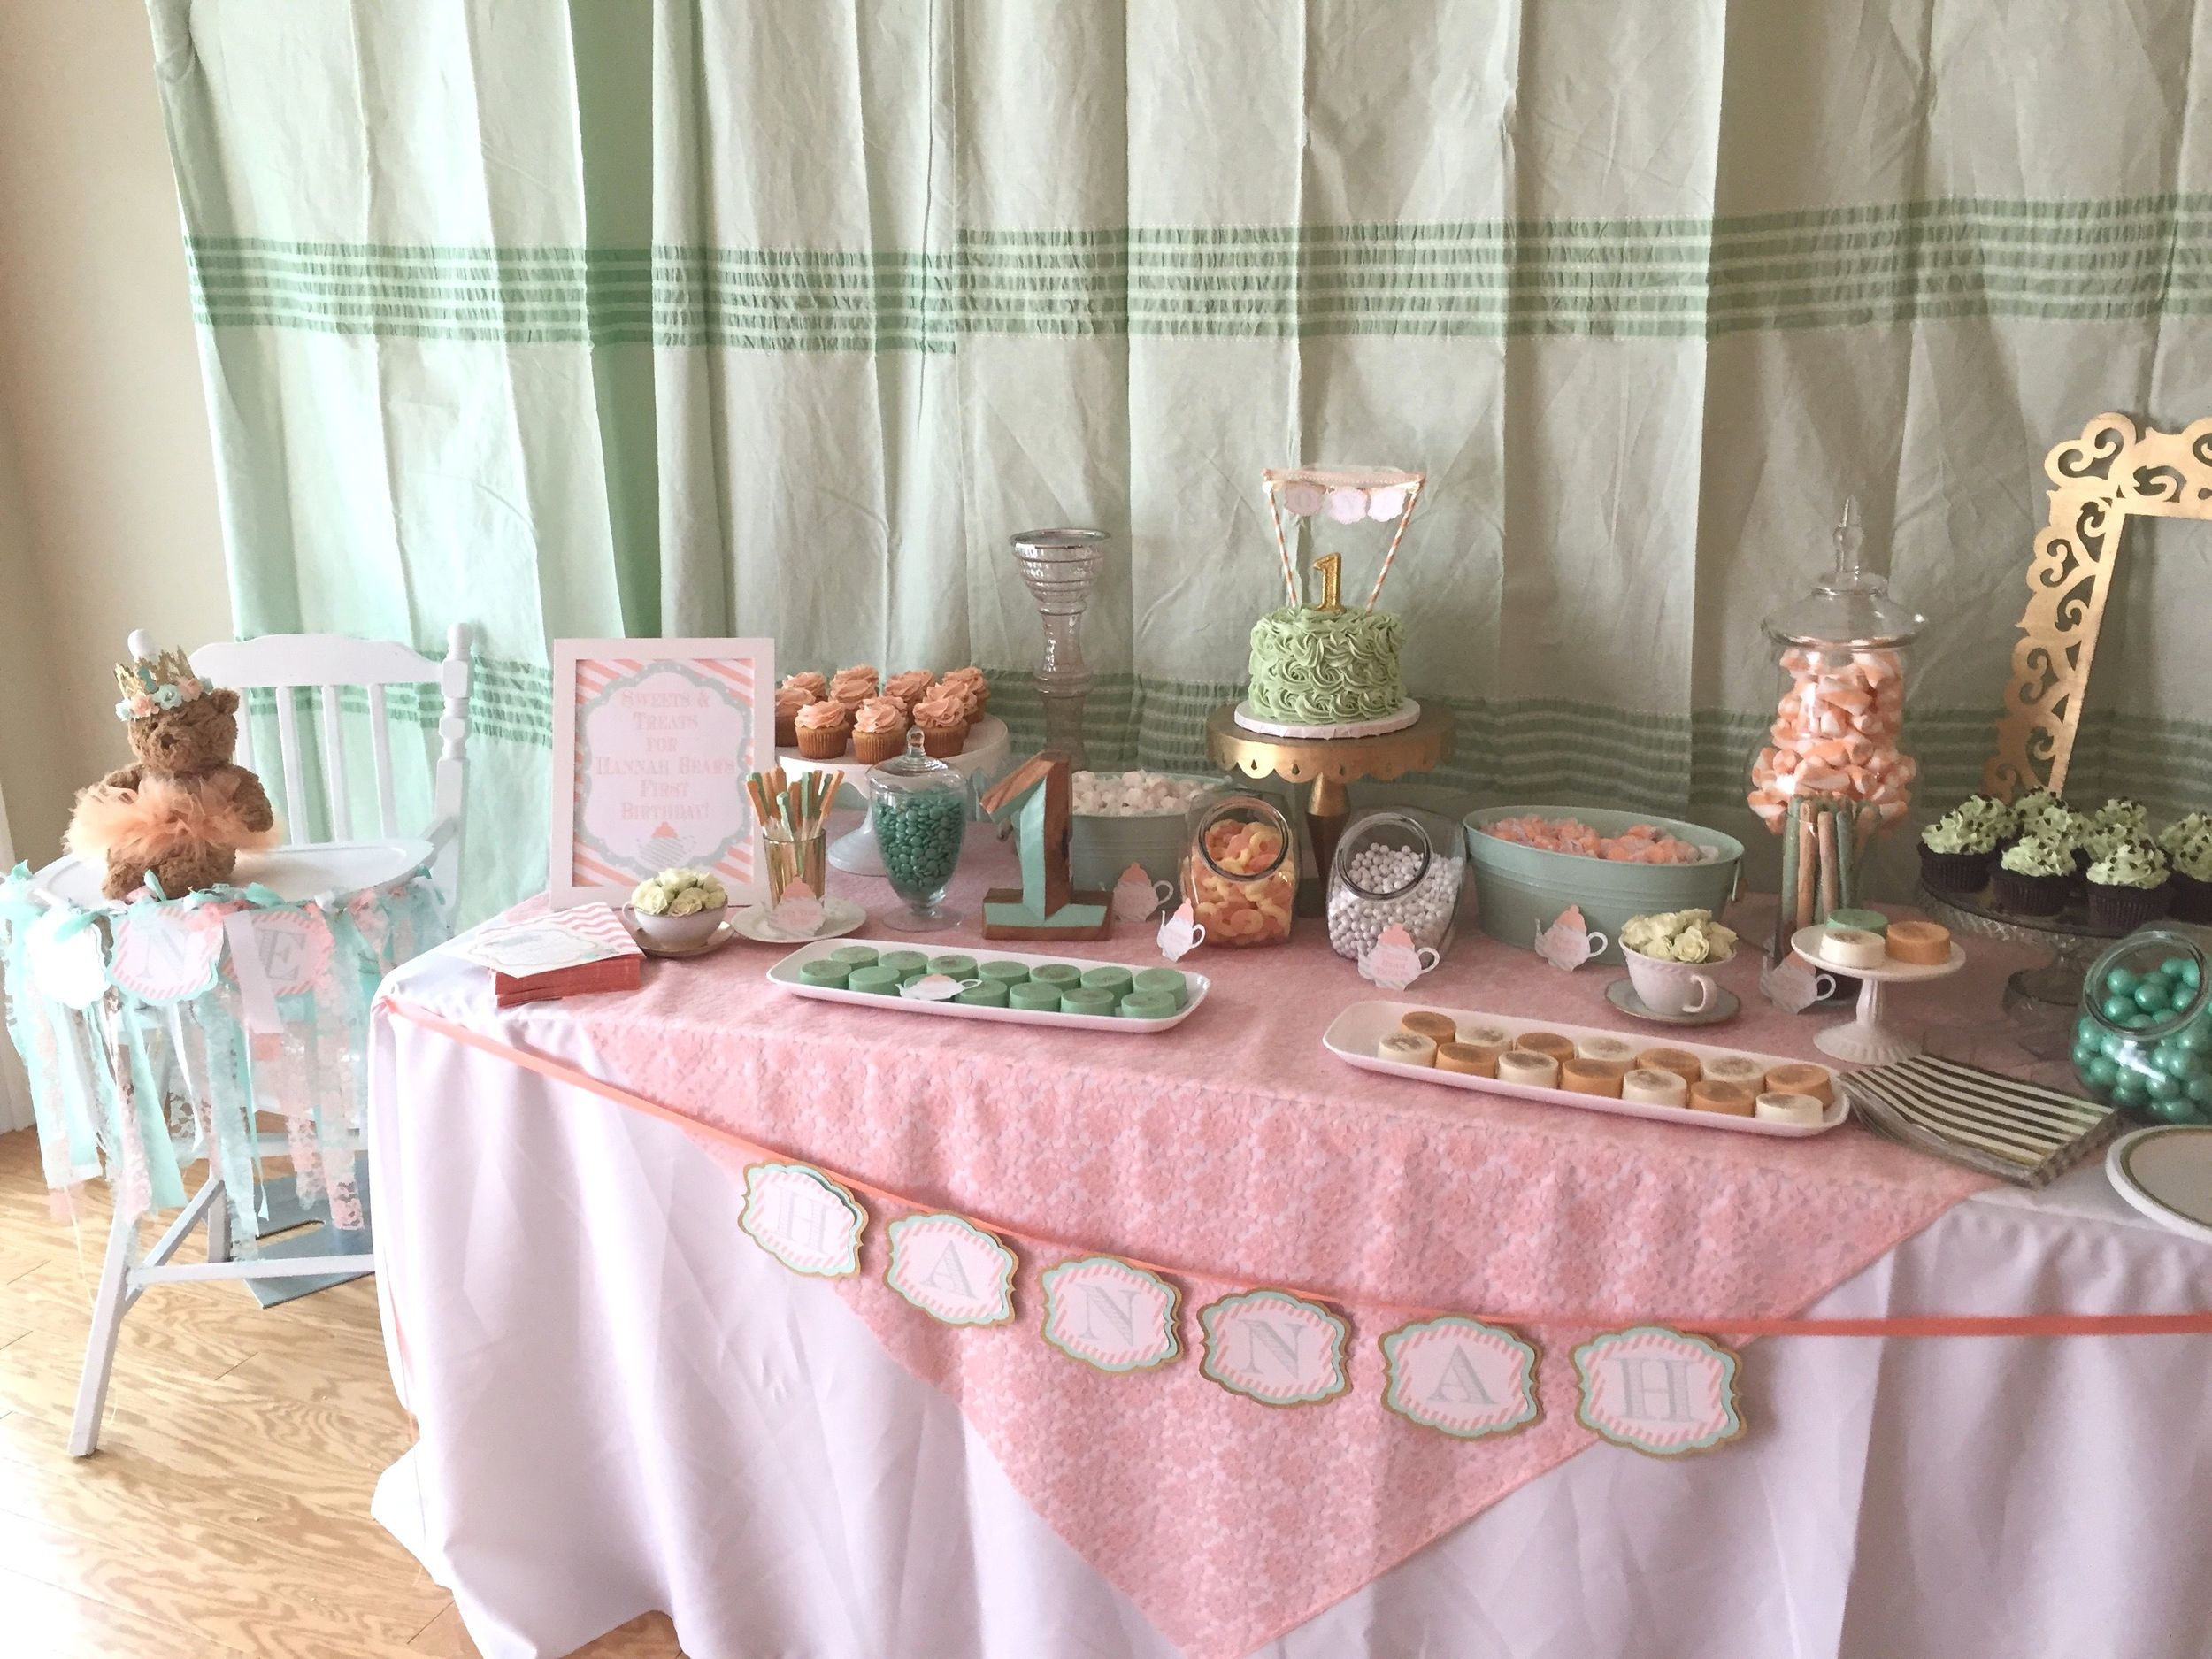 Teddy Bear Tea Party by www.downemerylane.com